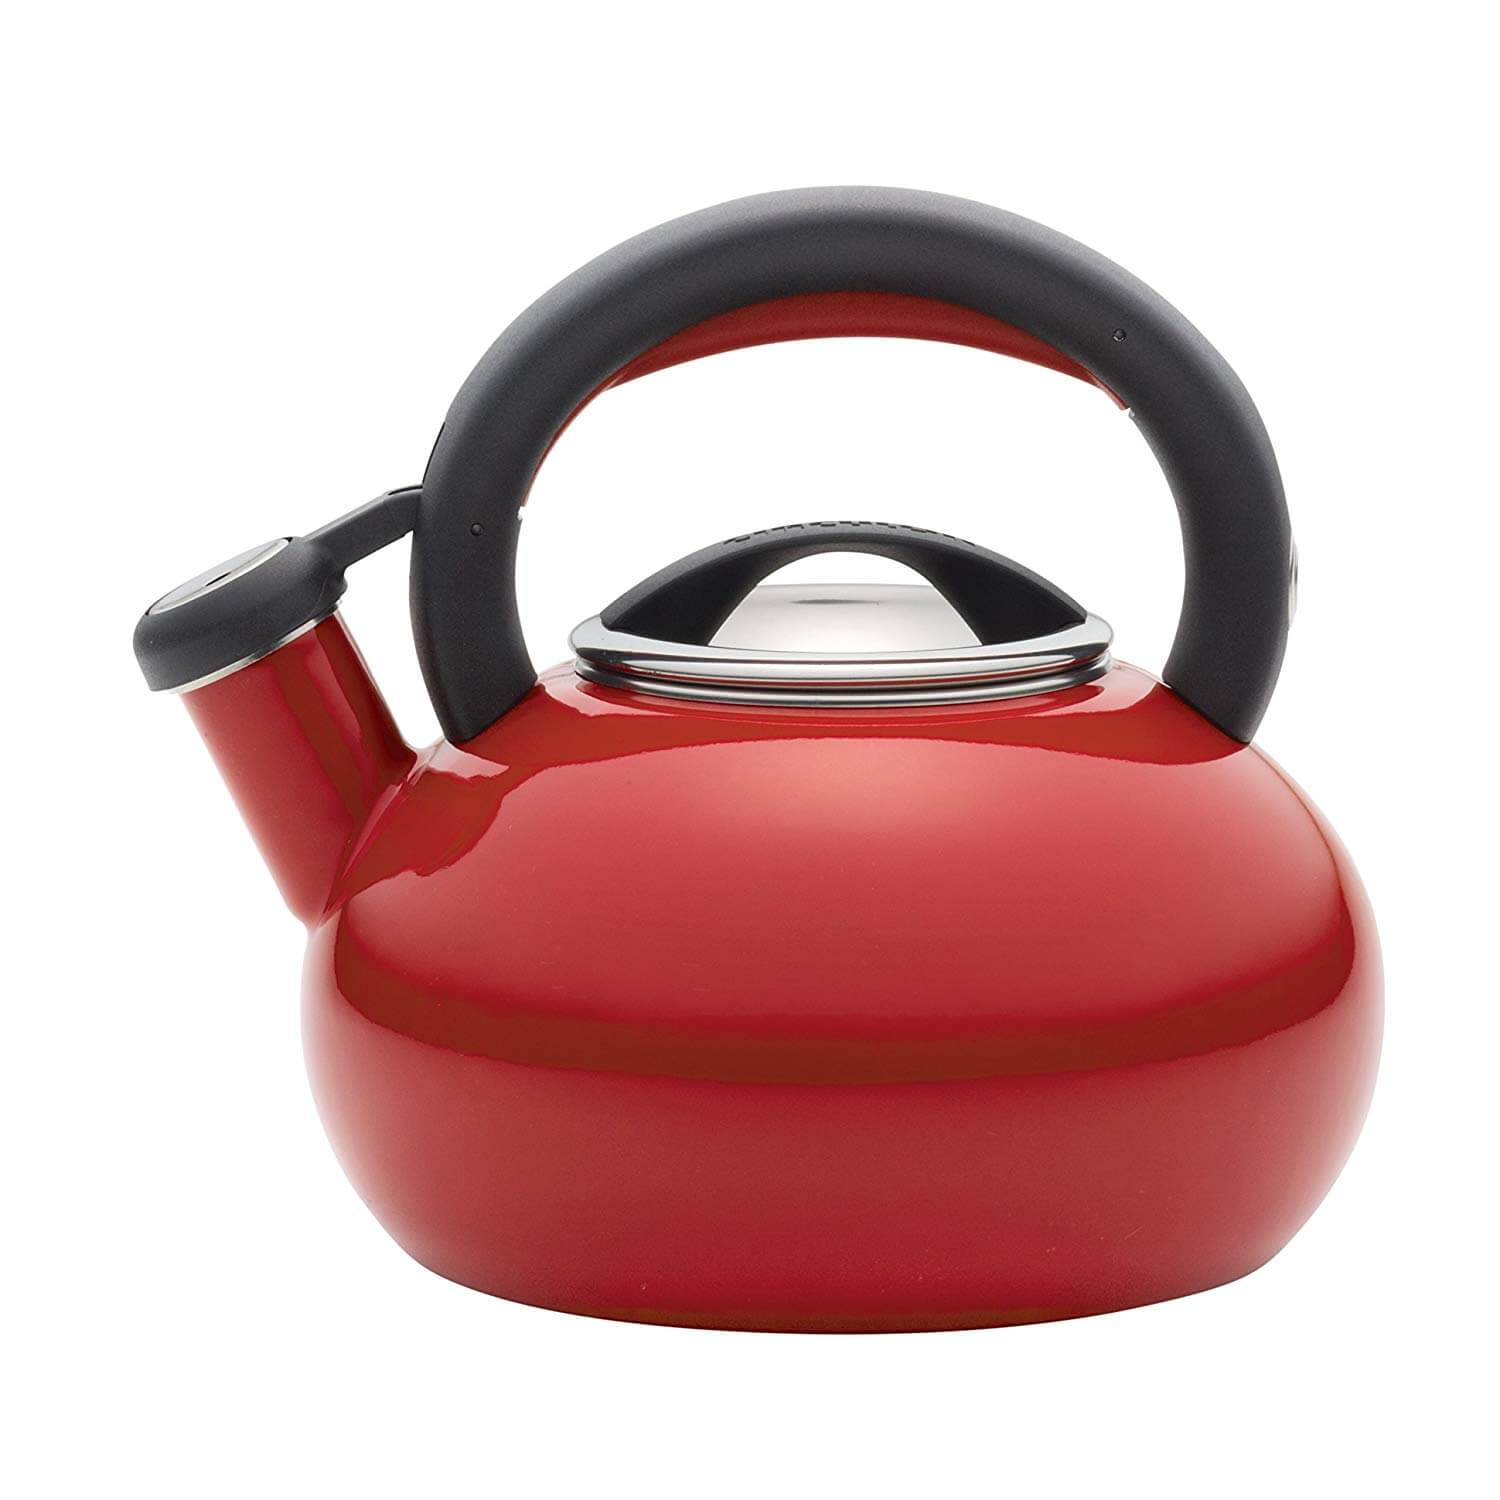 Circulon 1.5 Quart Sunrise Tea Kettle